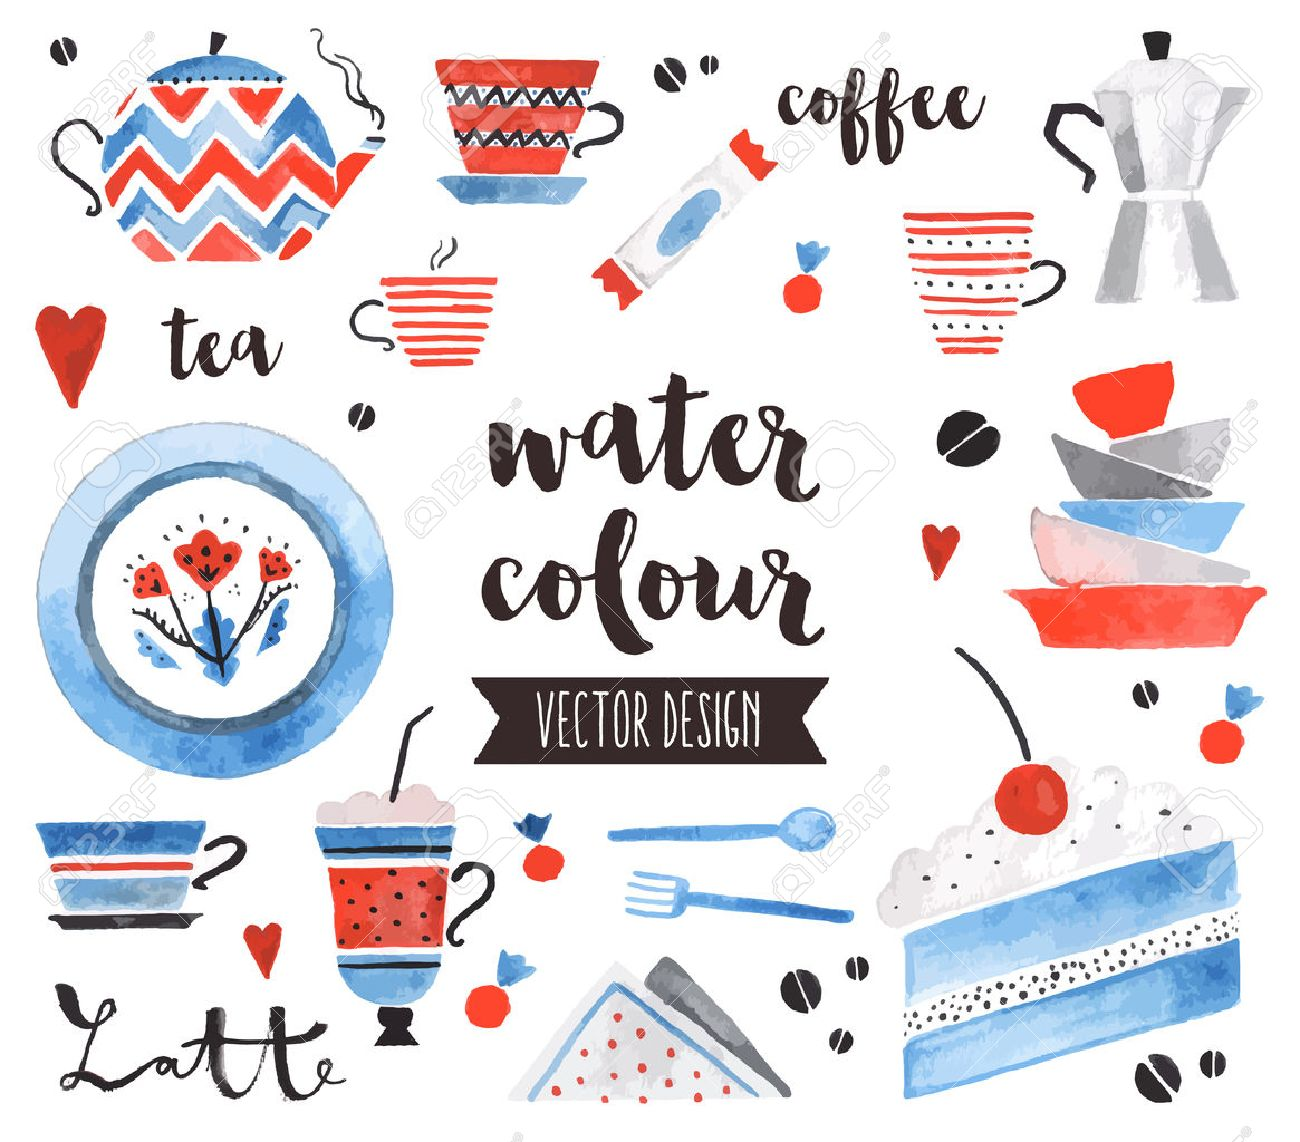 Premium quality watercolor icons set of traditional tea pot, bright ceramic plates.  decoration with text lettering. Flat lay watercolour objects isolated on white background. Standard-Bild - 53856865